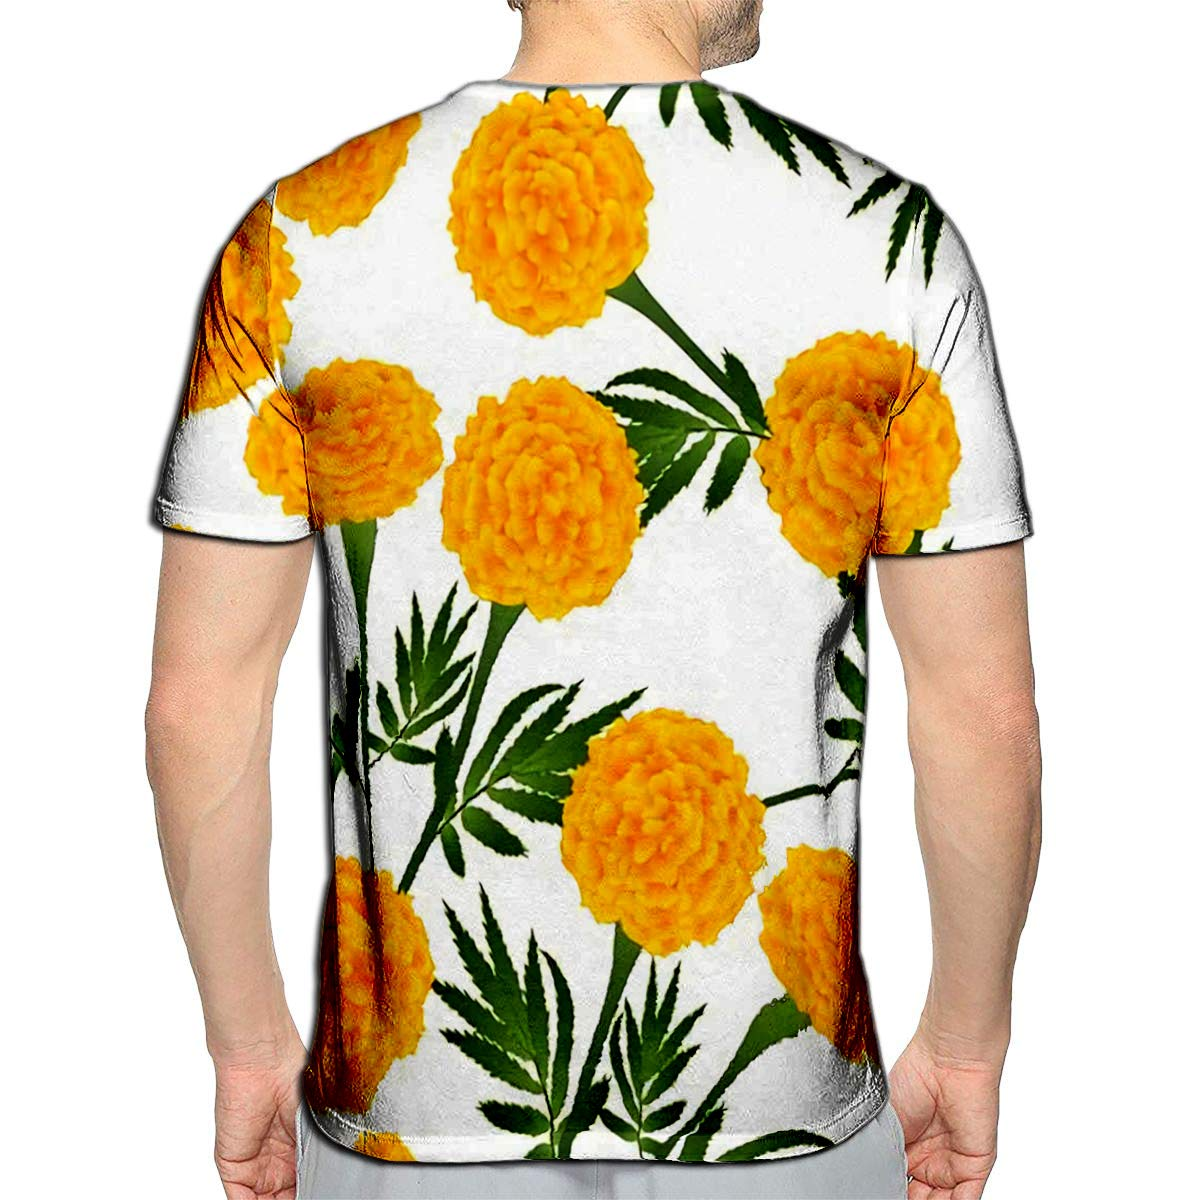 YILINGER 3D Printed T-Shirts Colorful Doodle Cartoon Marine Life Objects and Symbols Short Sleeve Tops Tees